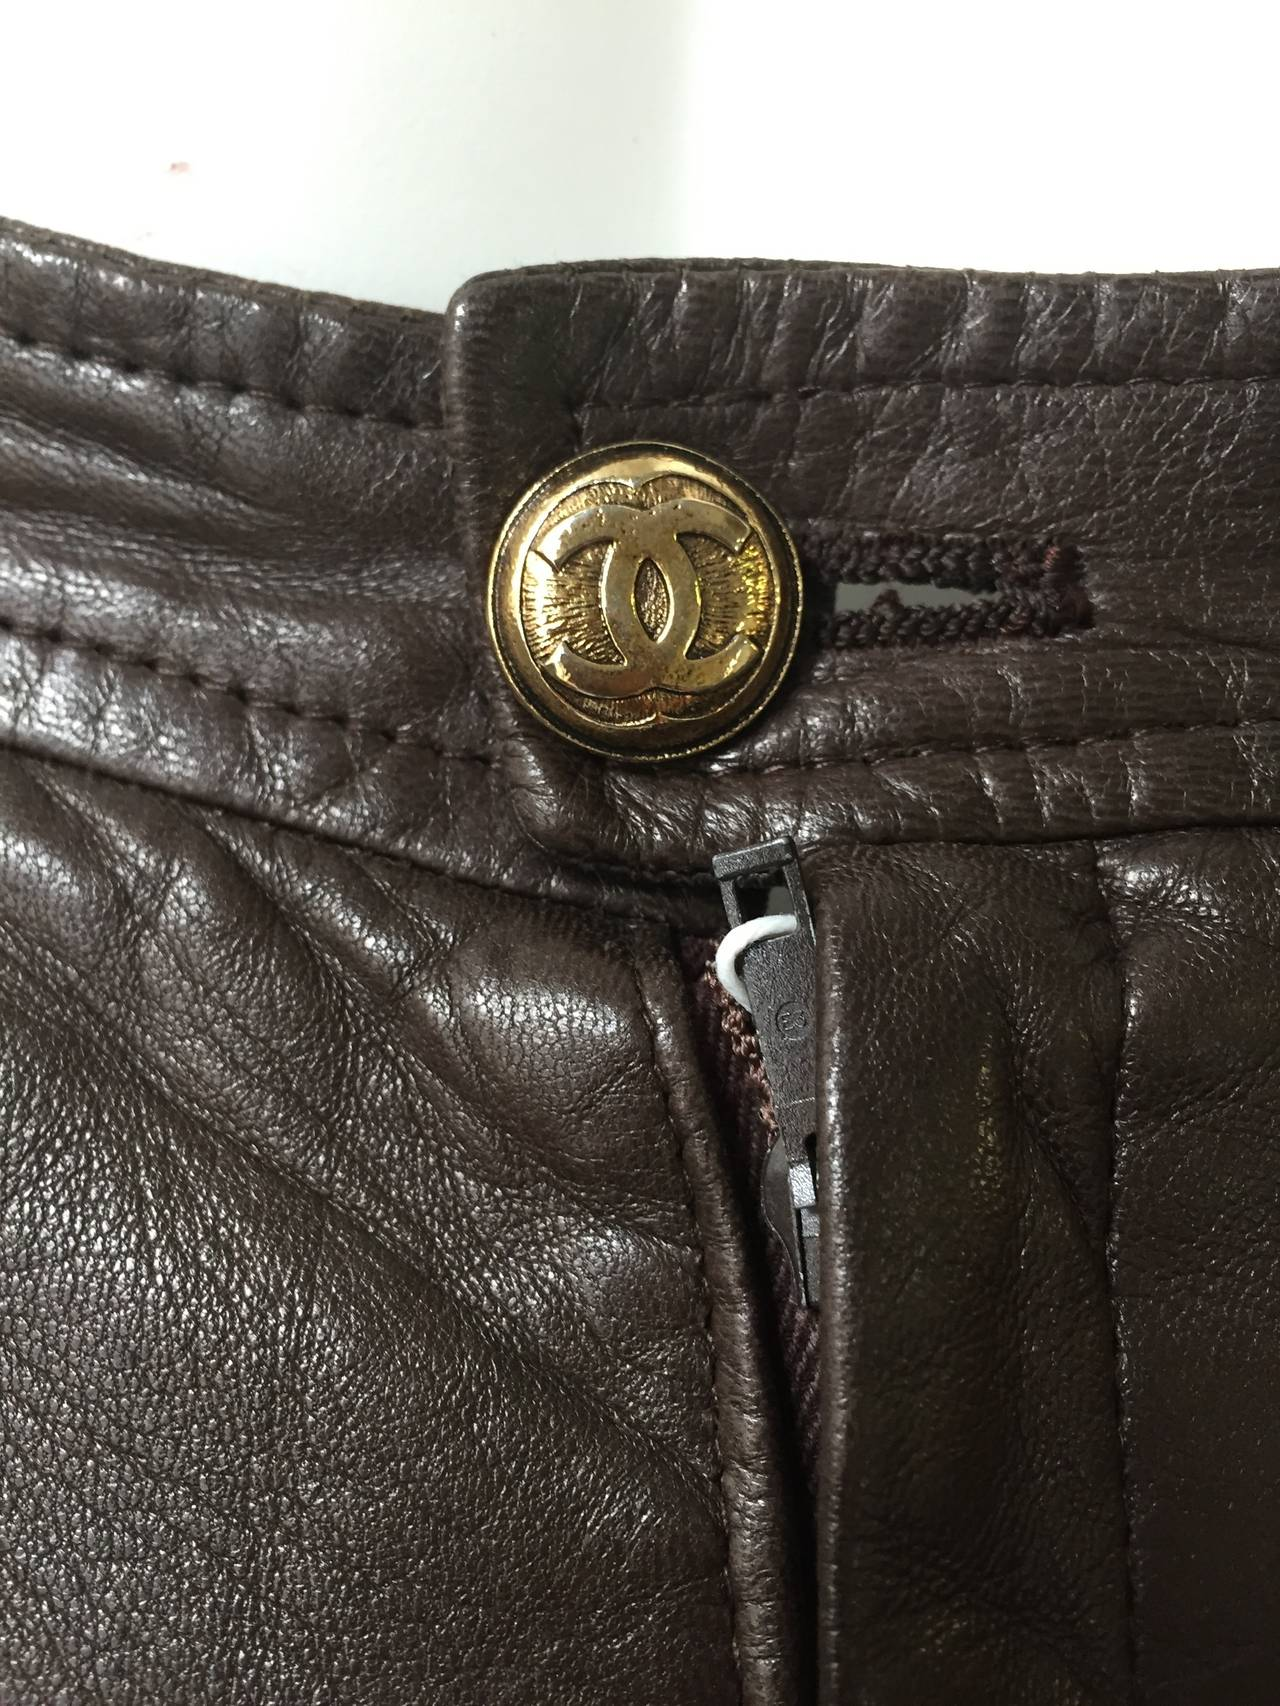 Chanel 80s brown leather skirt size 6. 6